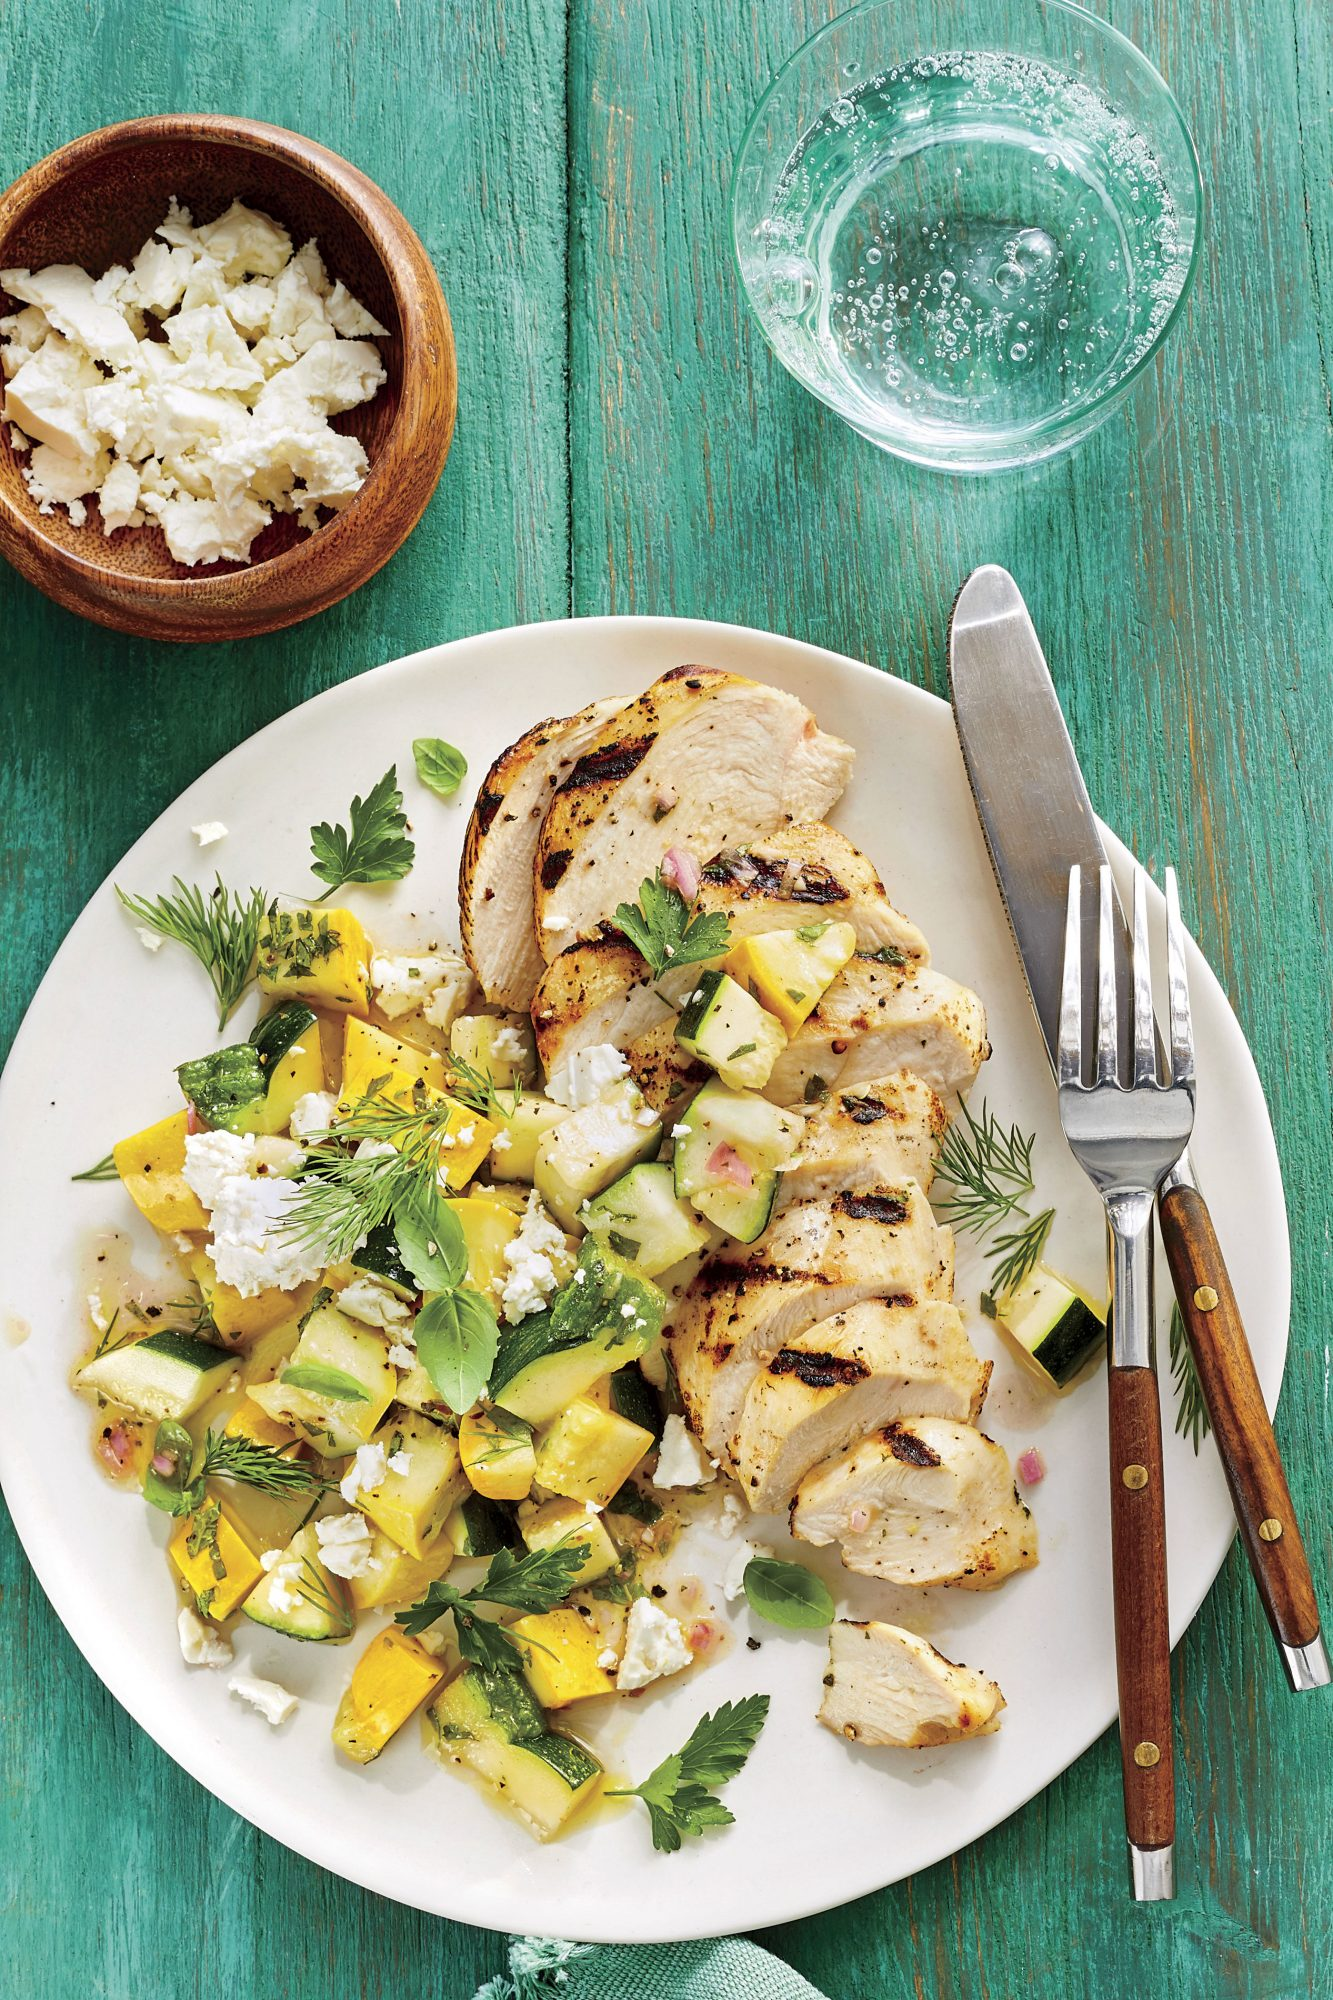 Grilled Chicken with Quick-Pickled Squash Salad